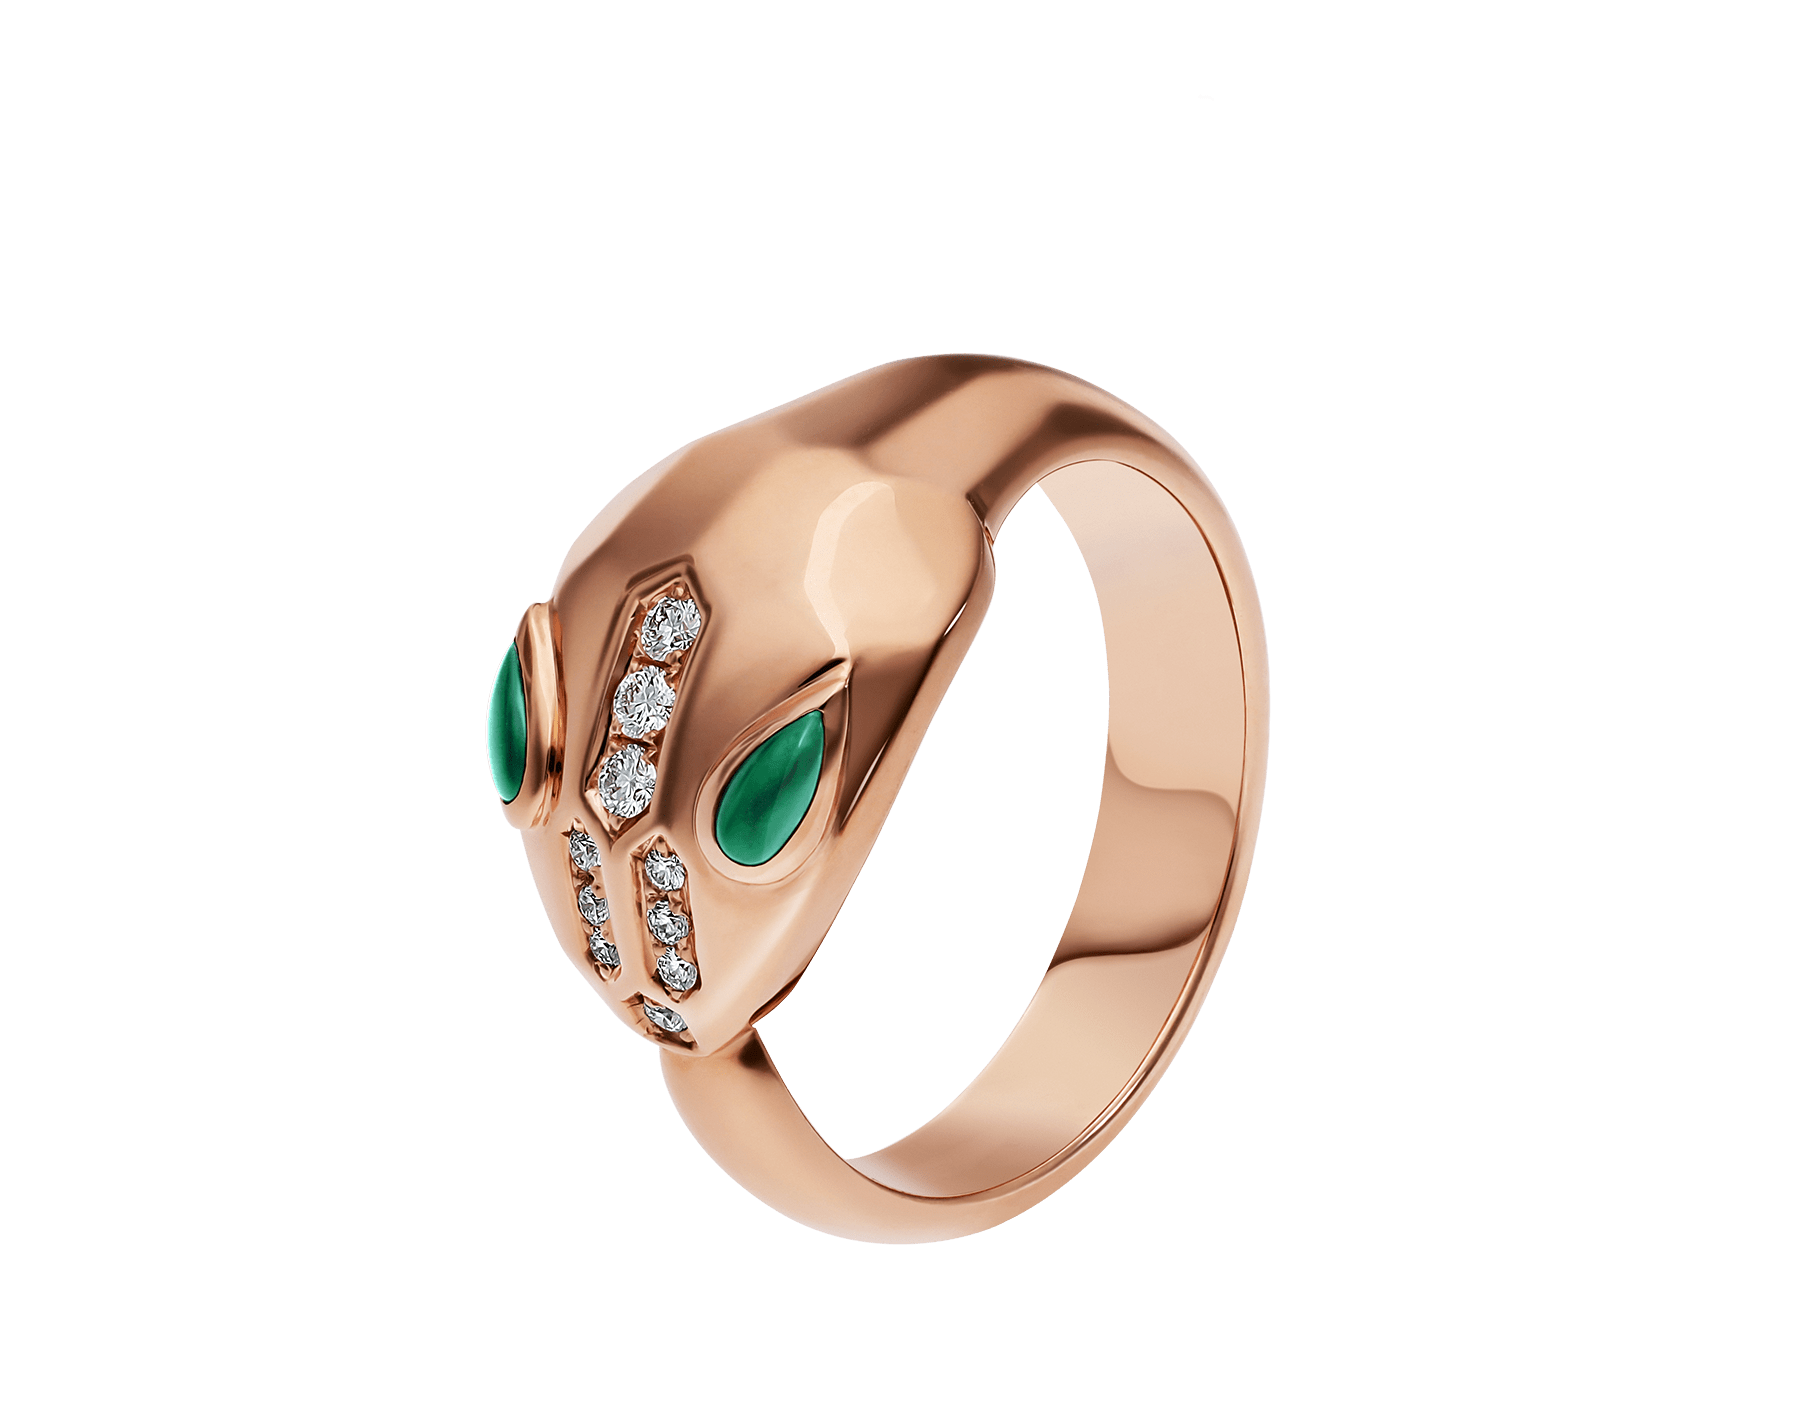 Serpenti ring in 18 kt rose gold, set with malachite eyes and demi pavé diamonds. AN857802 image 1